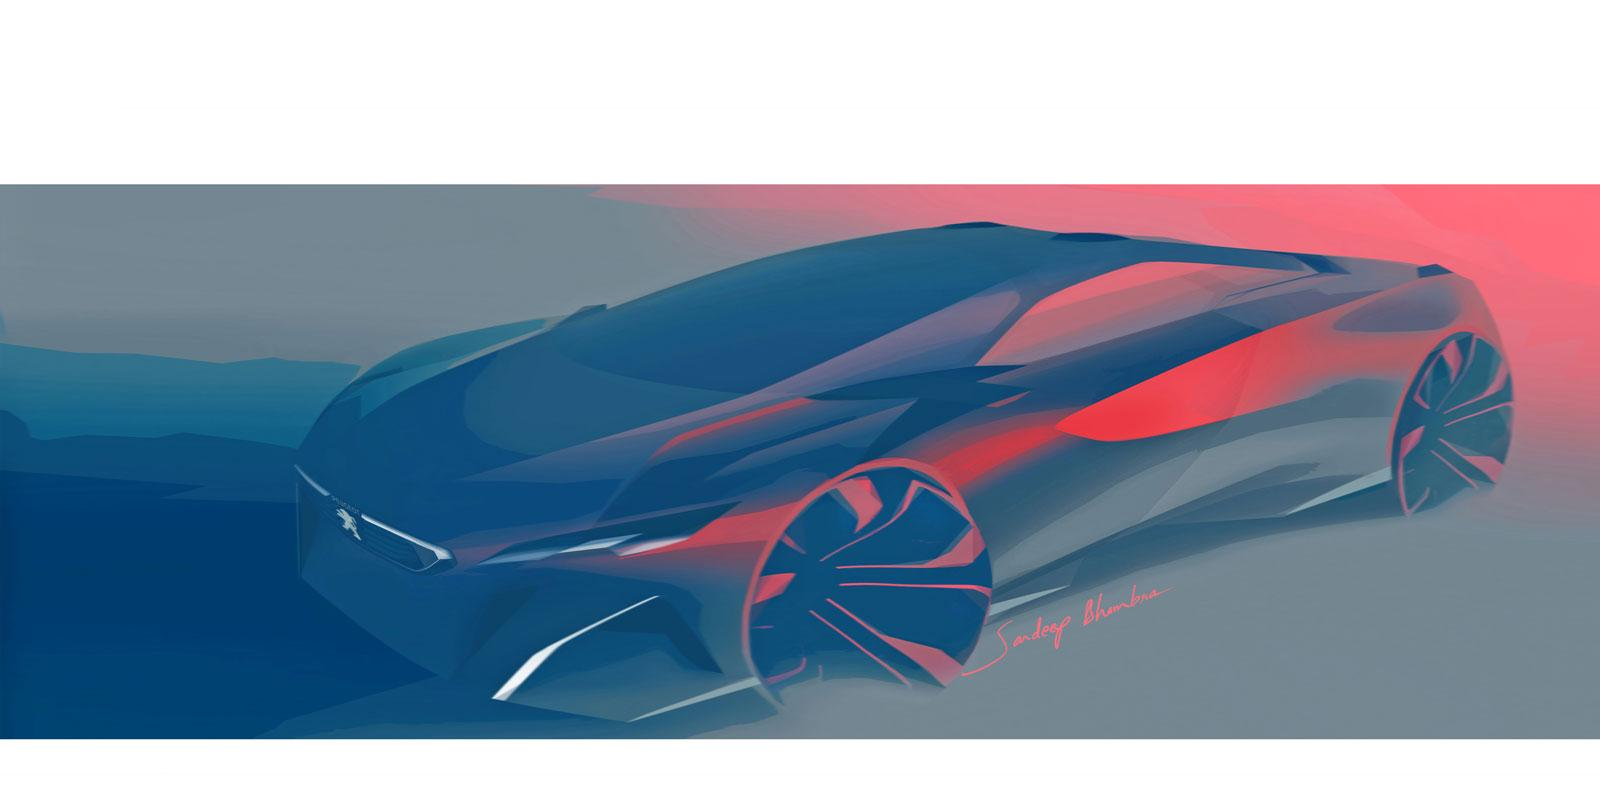 Peugeot Onyx Concept Design Sketch - Car Body Design